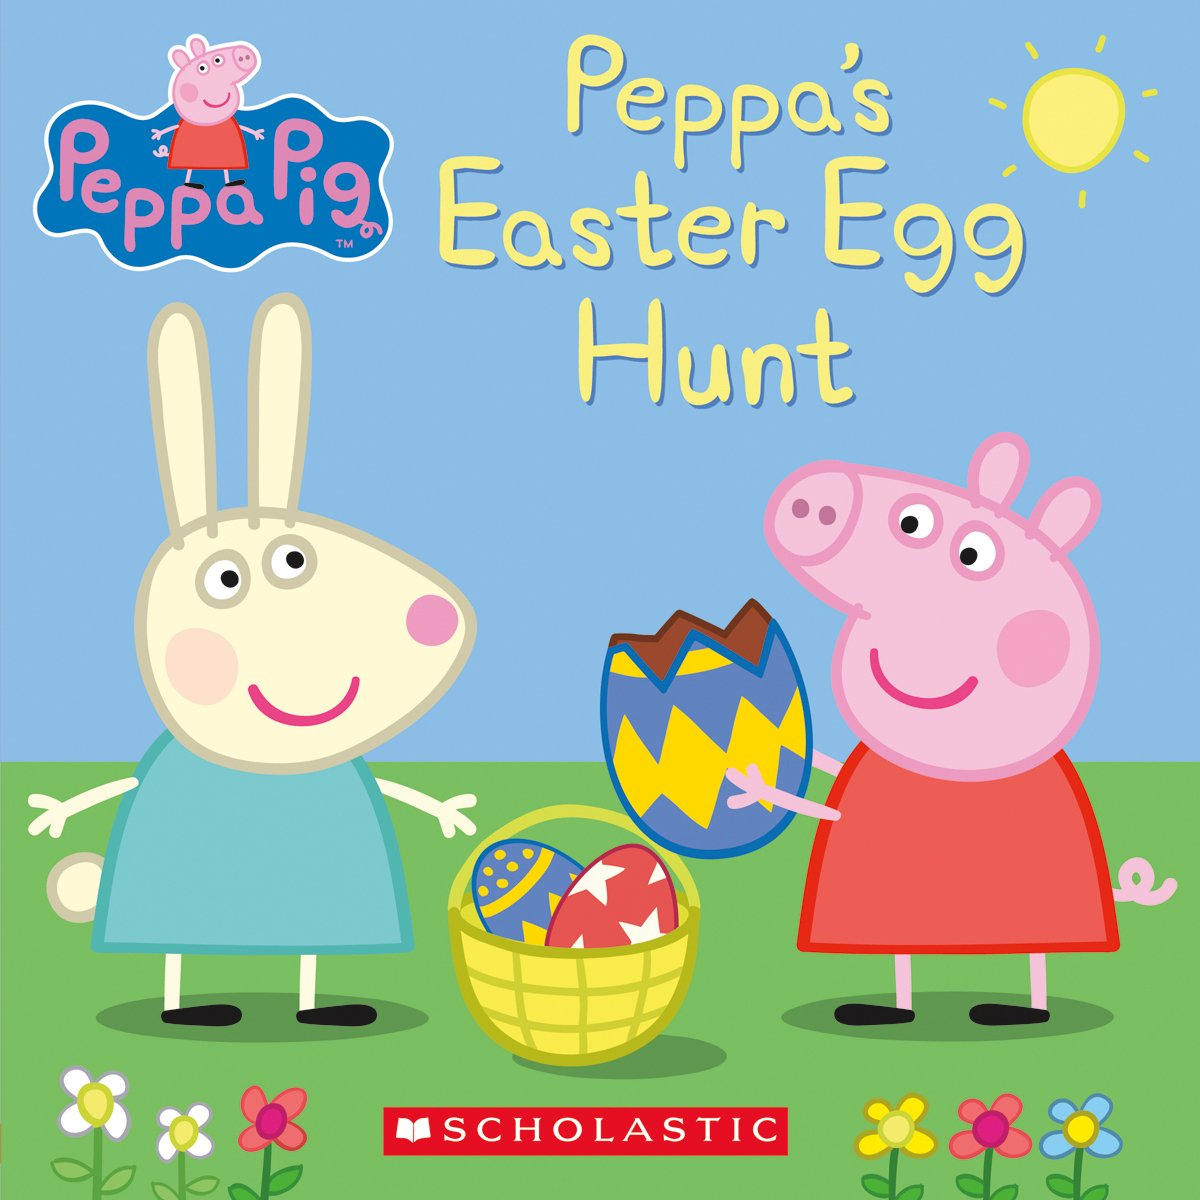 Peppas easter egg hunt peppa pig scholastic eone peppas easter egg hunt peppa pig scholastic eone 9780545881302 amazon books negle Choice Image